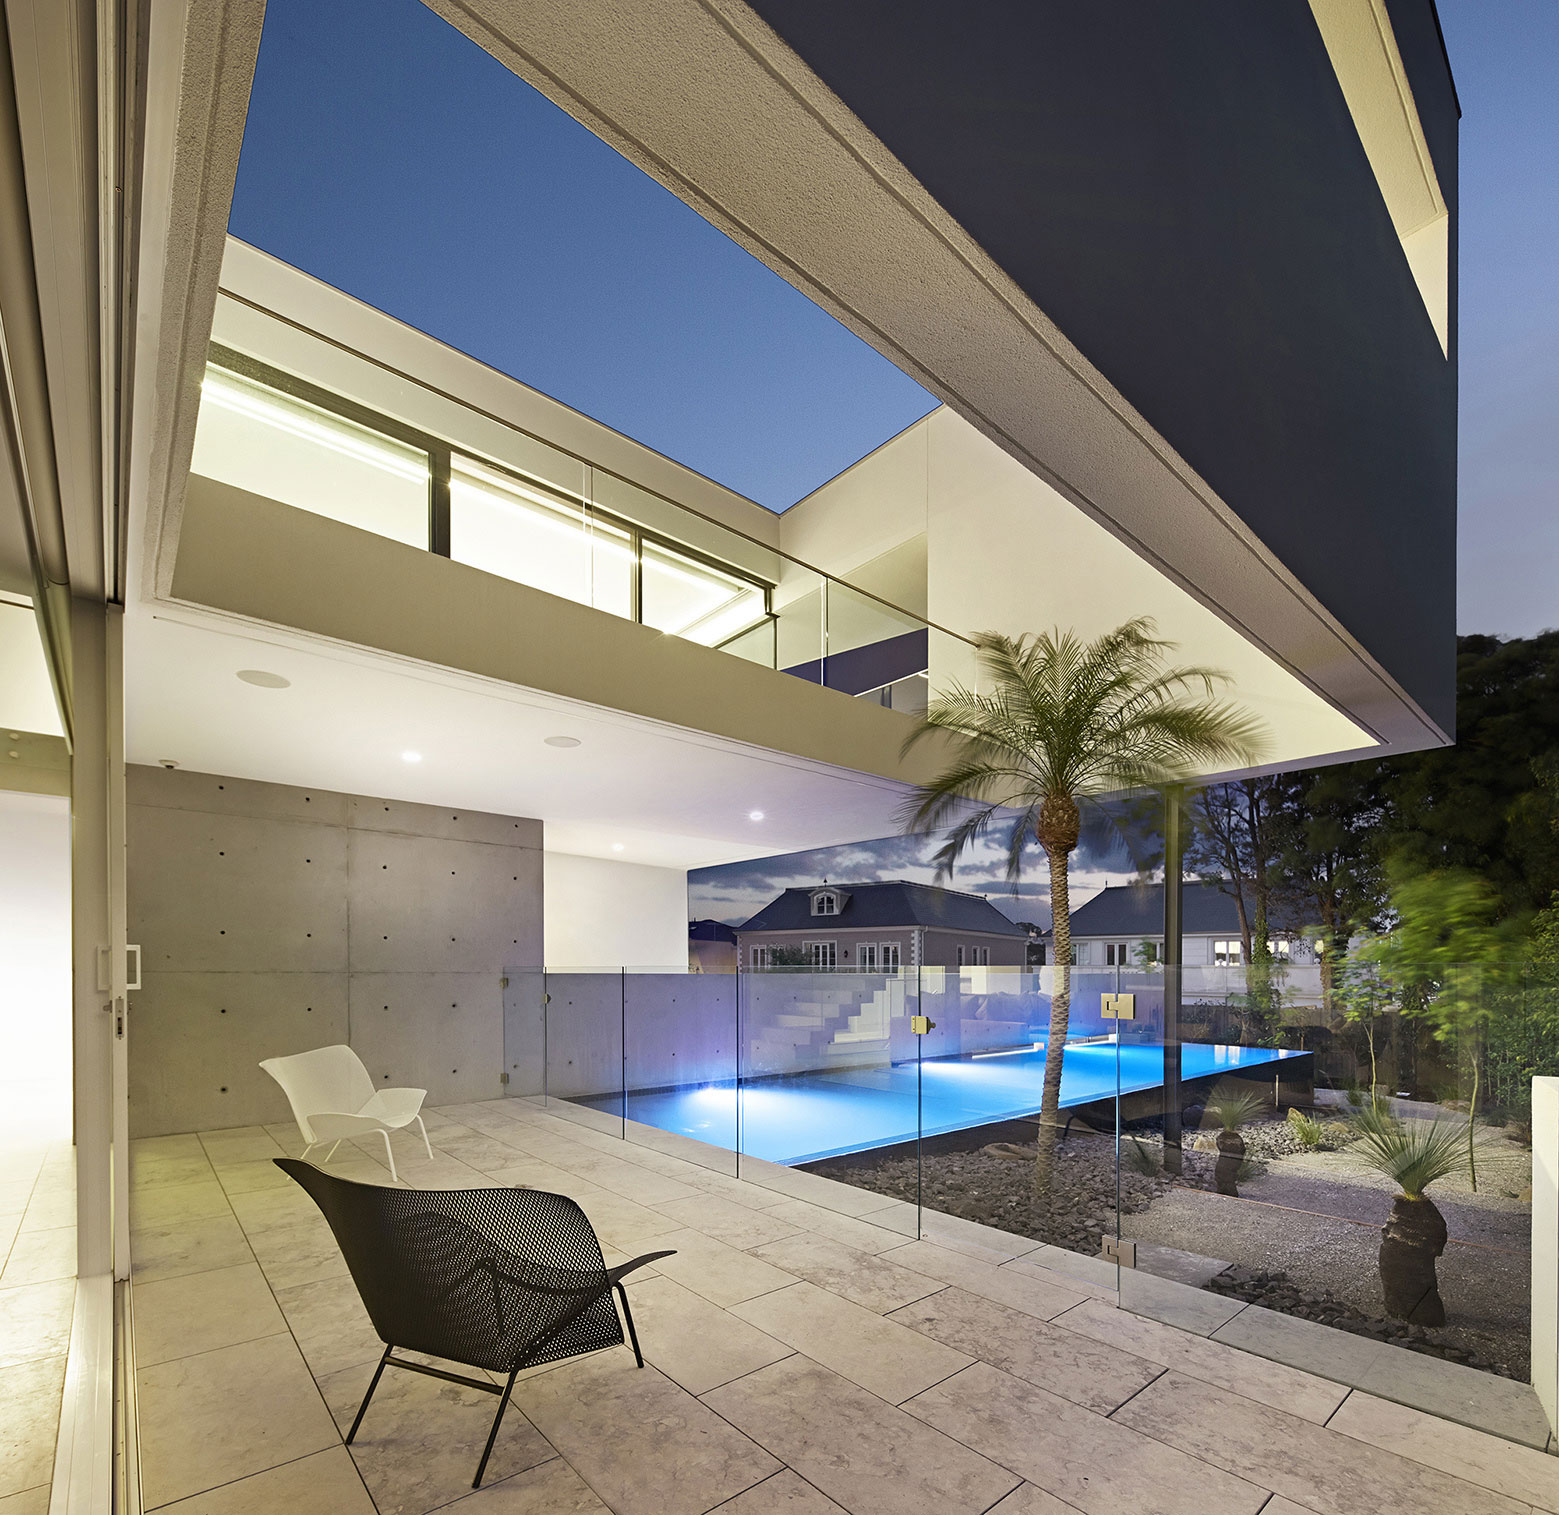 Spectacular Residence Connects To The Sky Through Voids